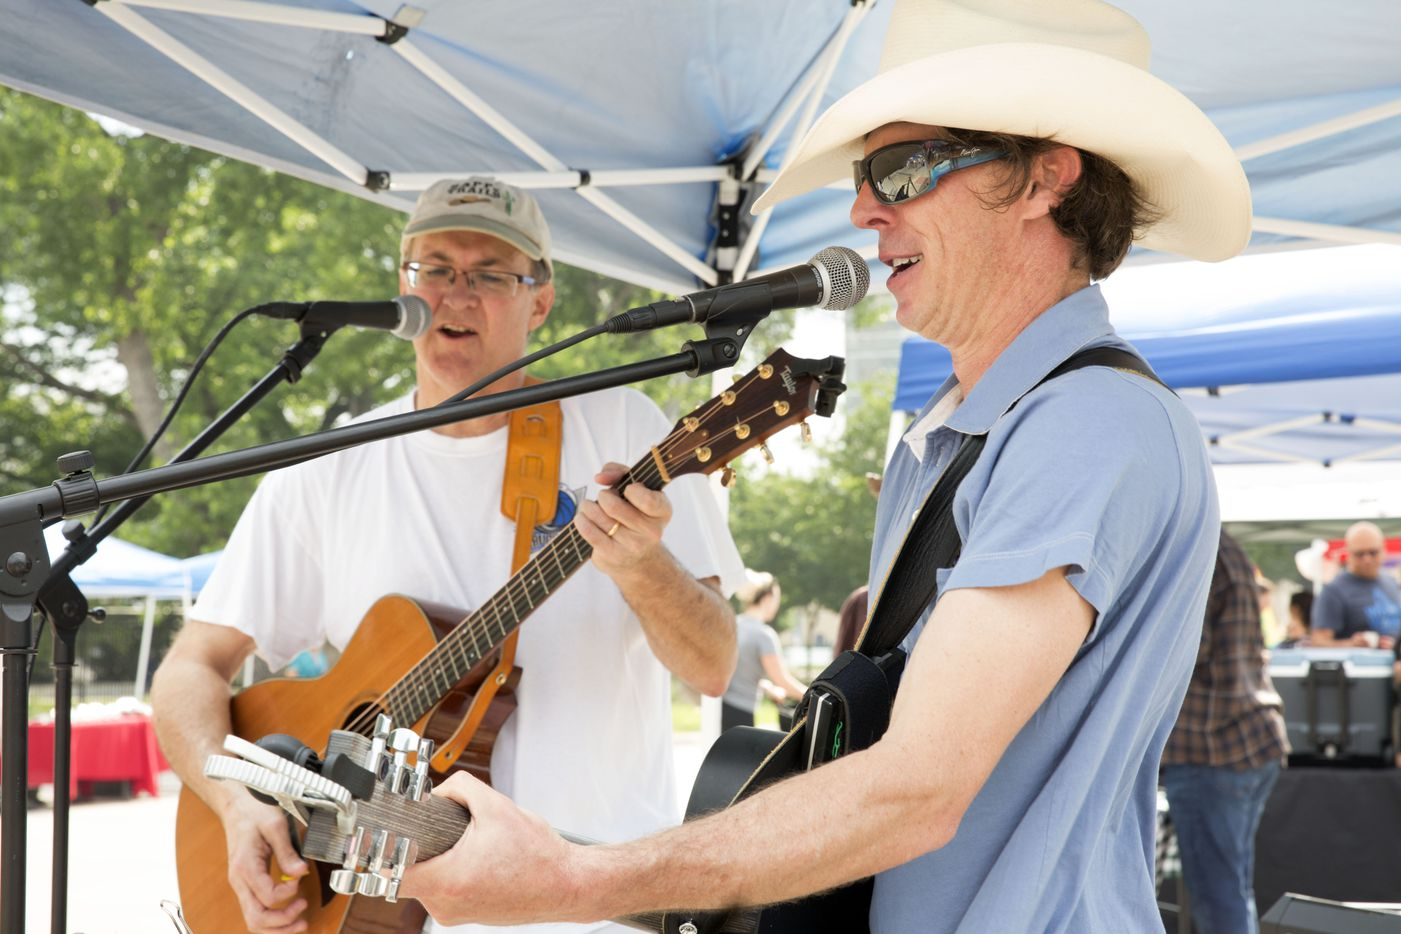 Discovery Mass Band members Mike Ernst (left) and Mark McCommas (right) perform at the opening day  of Saint Michael's Farmers Market.